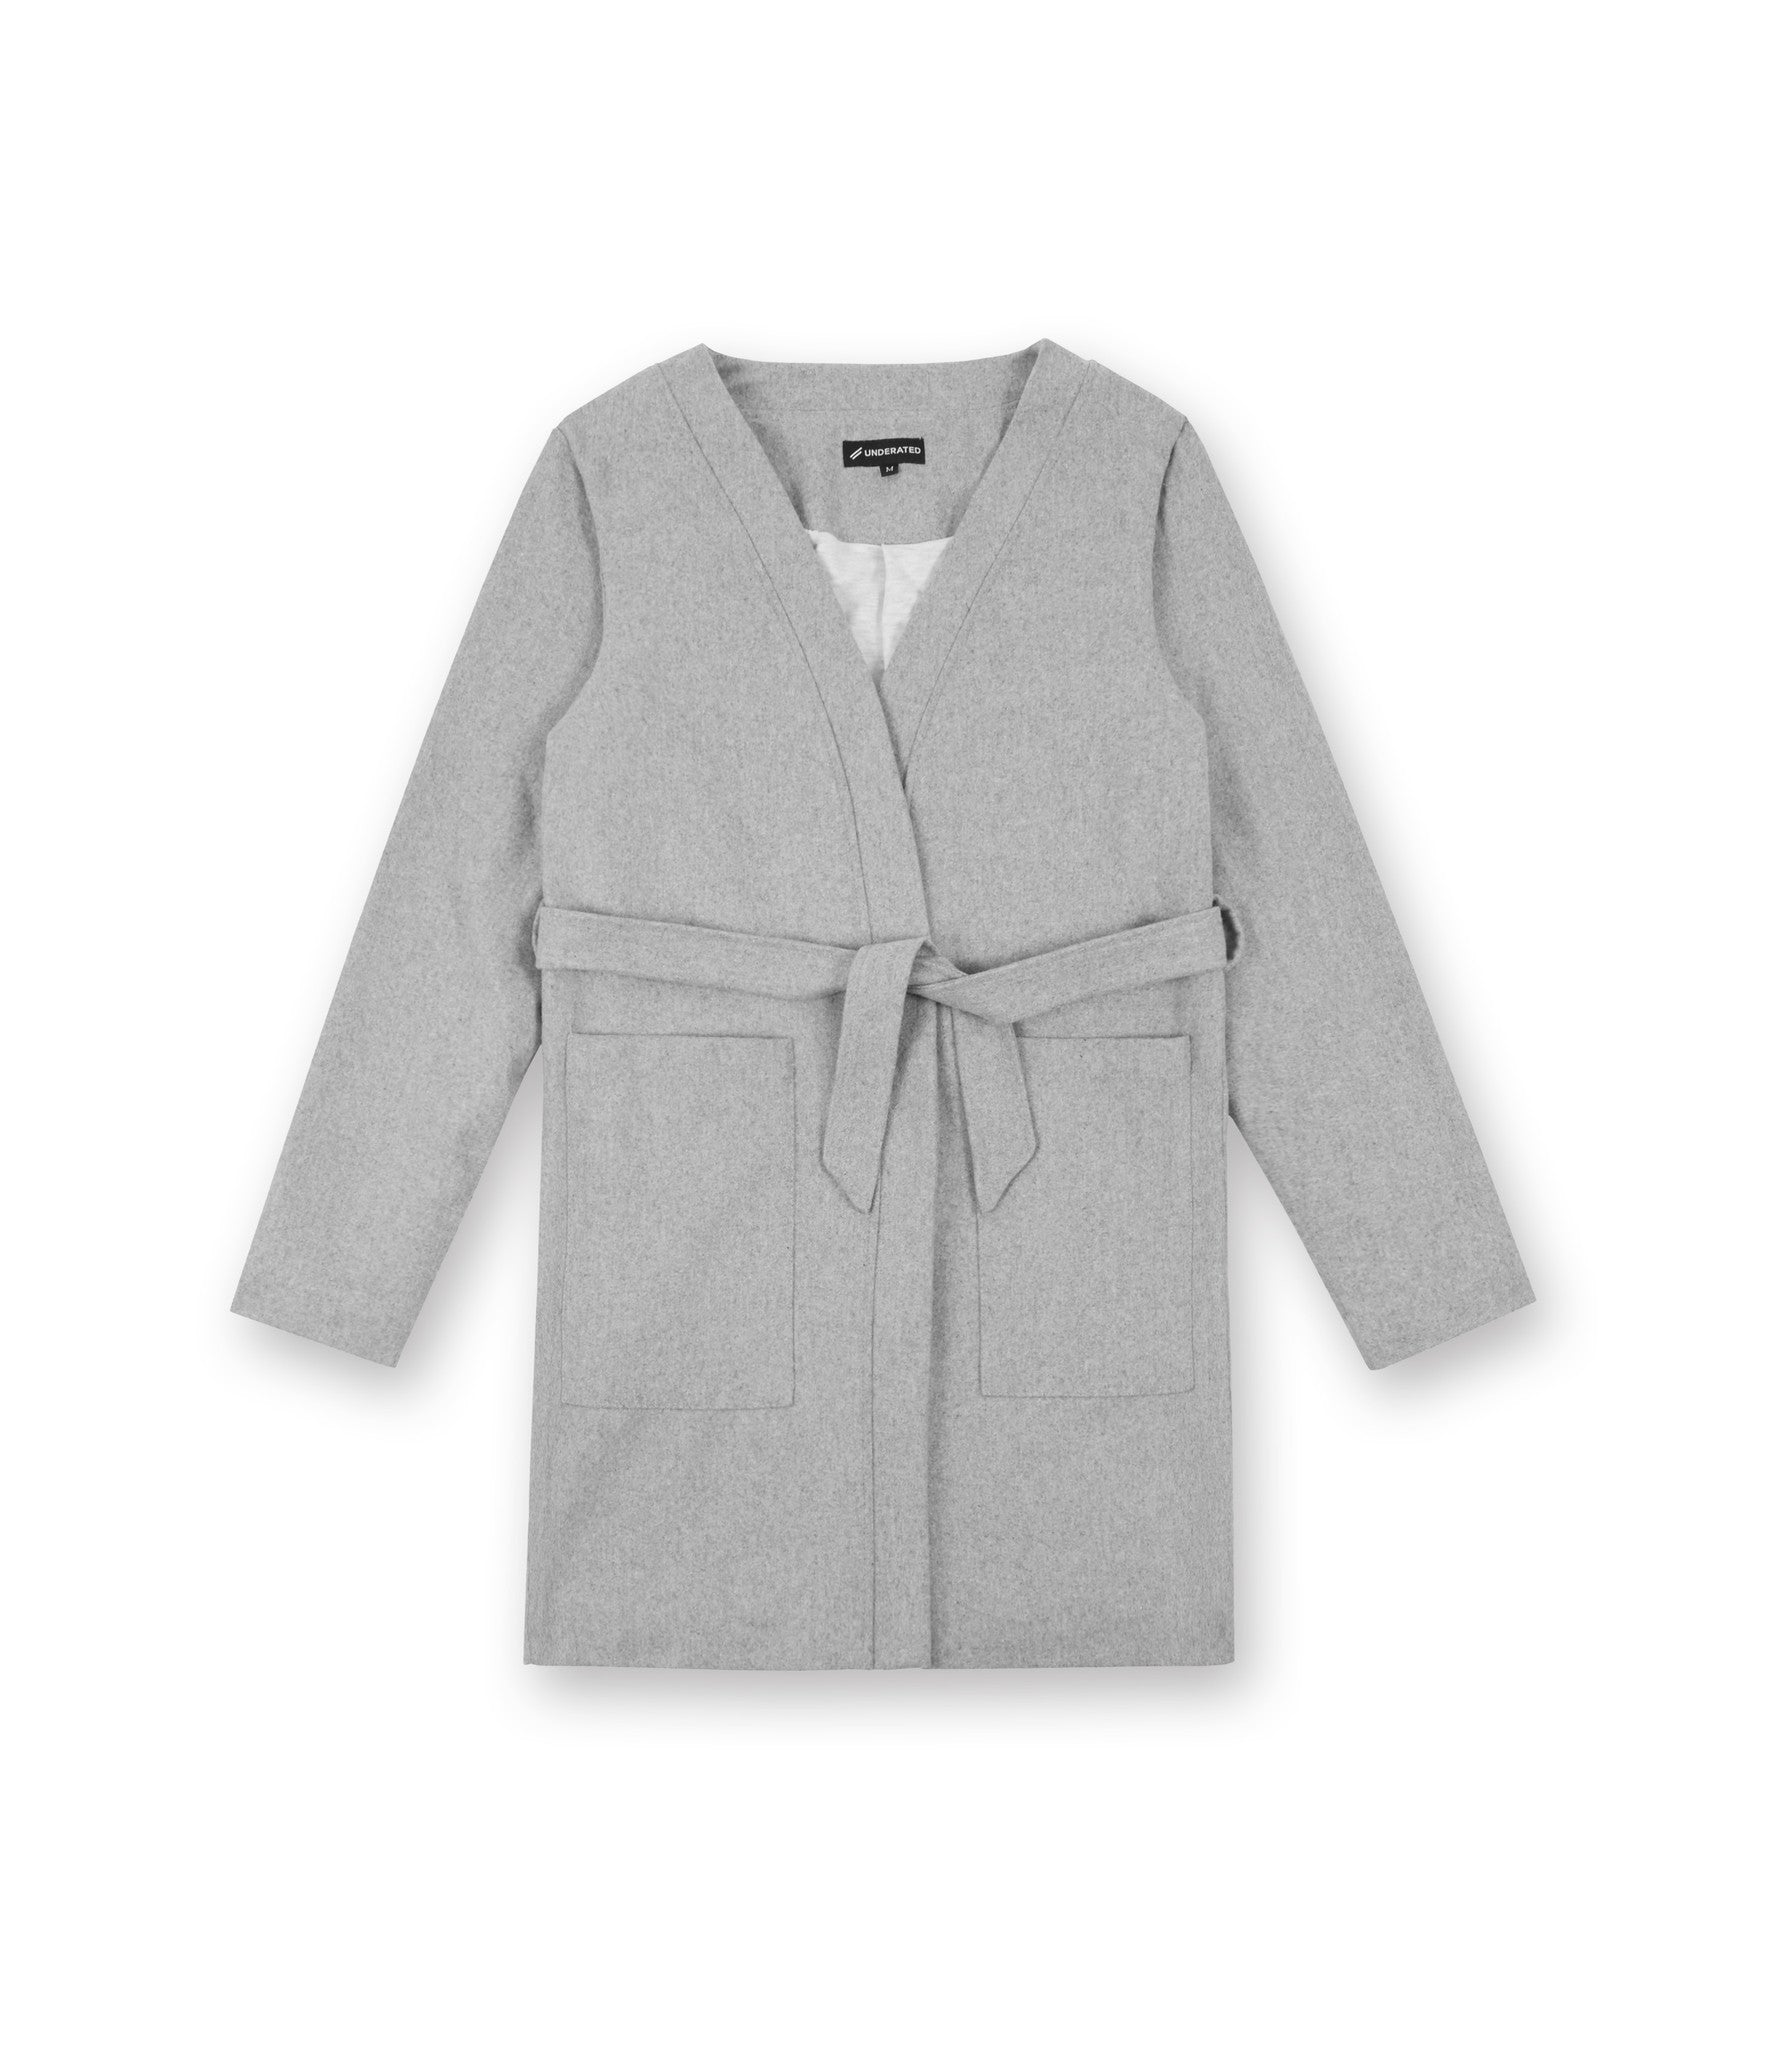 KM070 Wool Blend Kimono Coat - Grey - underated london - underatedco - 1